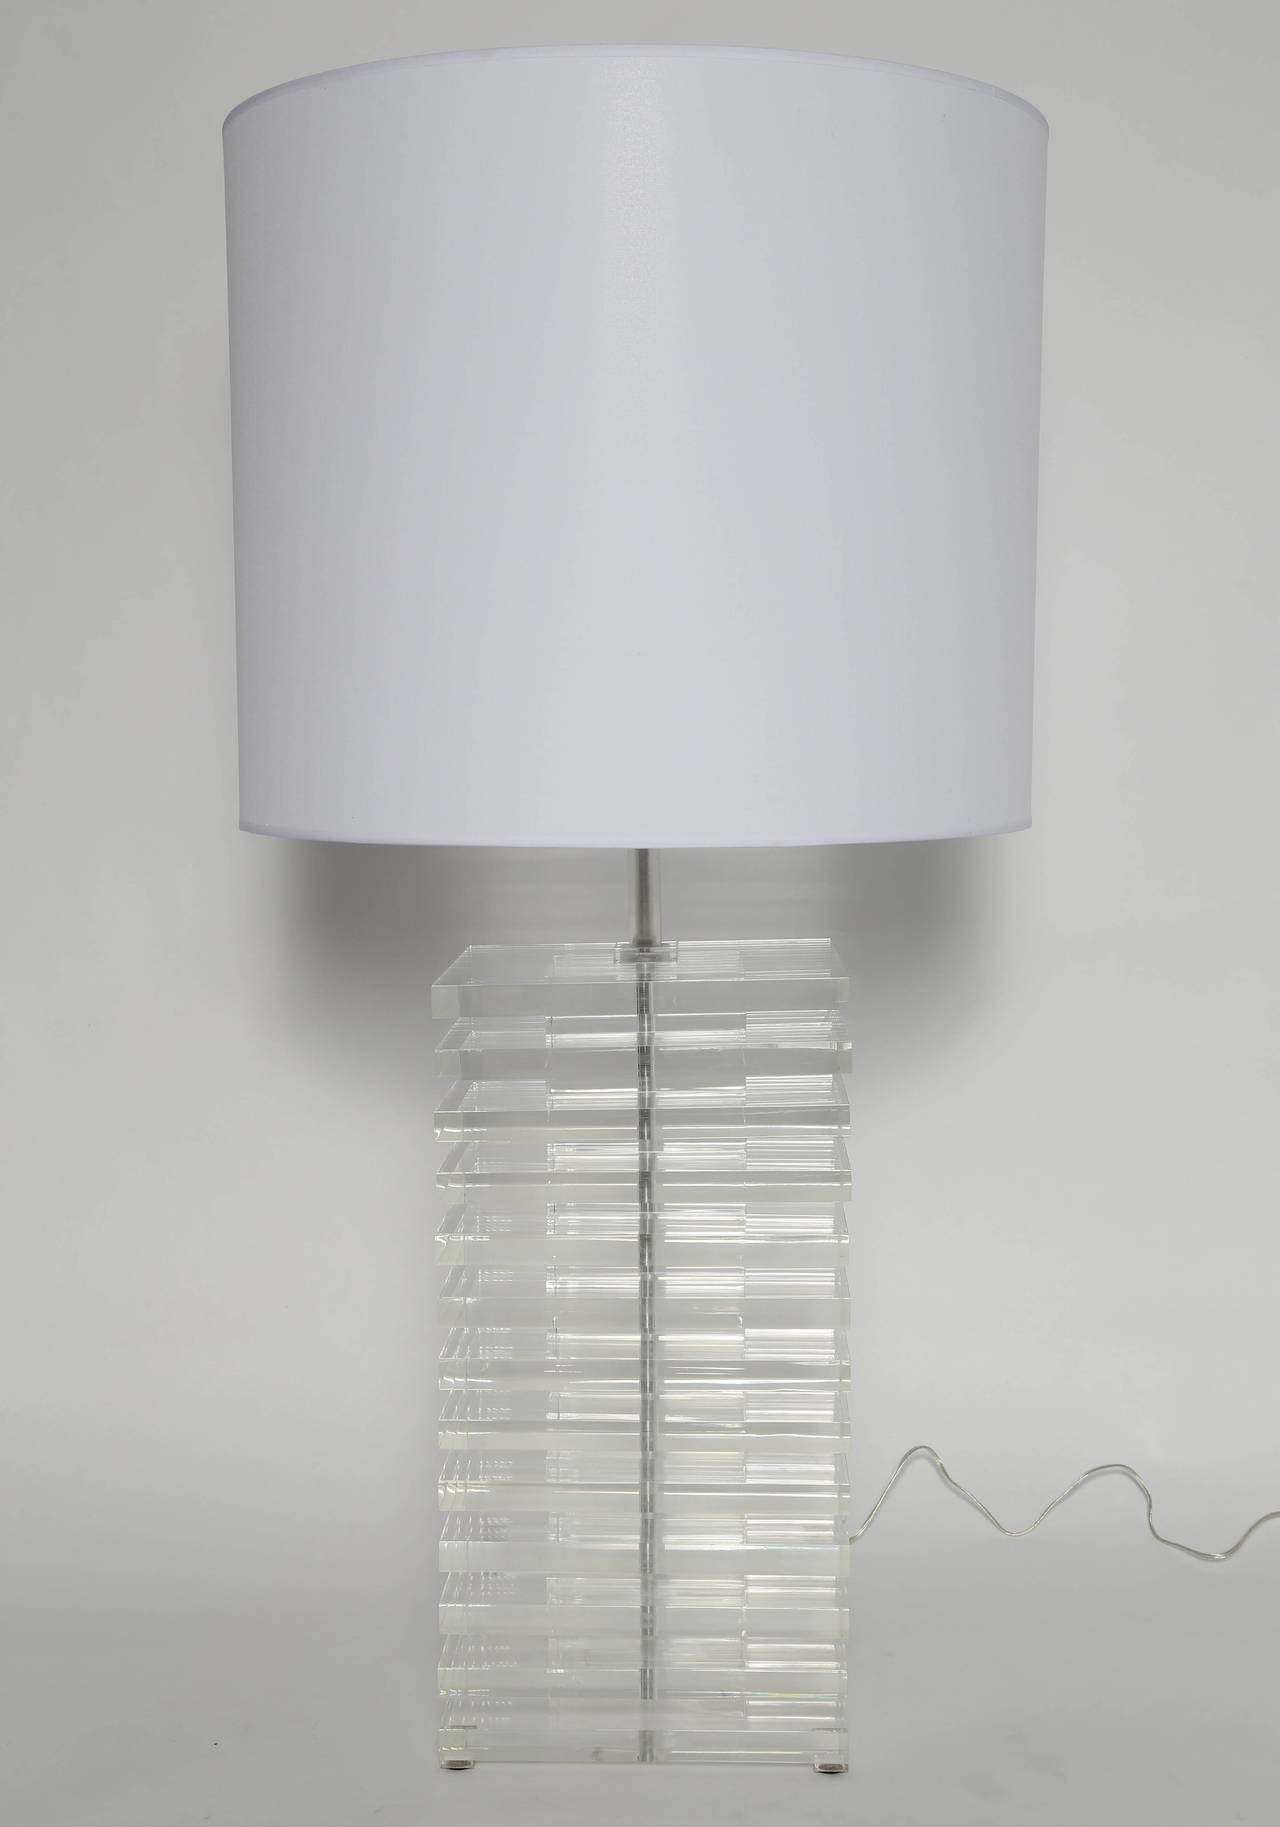 Enormous and extremely heavy statement lamp consists of stacked alternating large and small 1-inch-thick Lucite squares, circa 1970s. Rewired with new three-way socket. Lucite base is 12